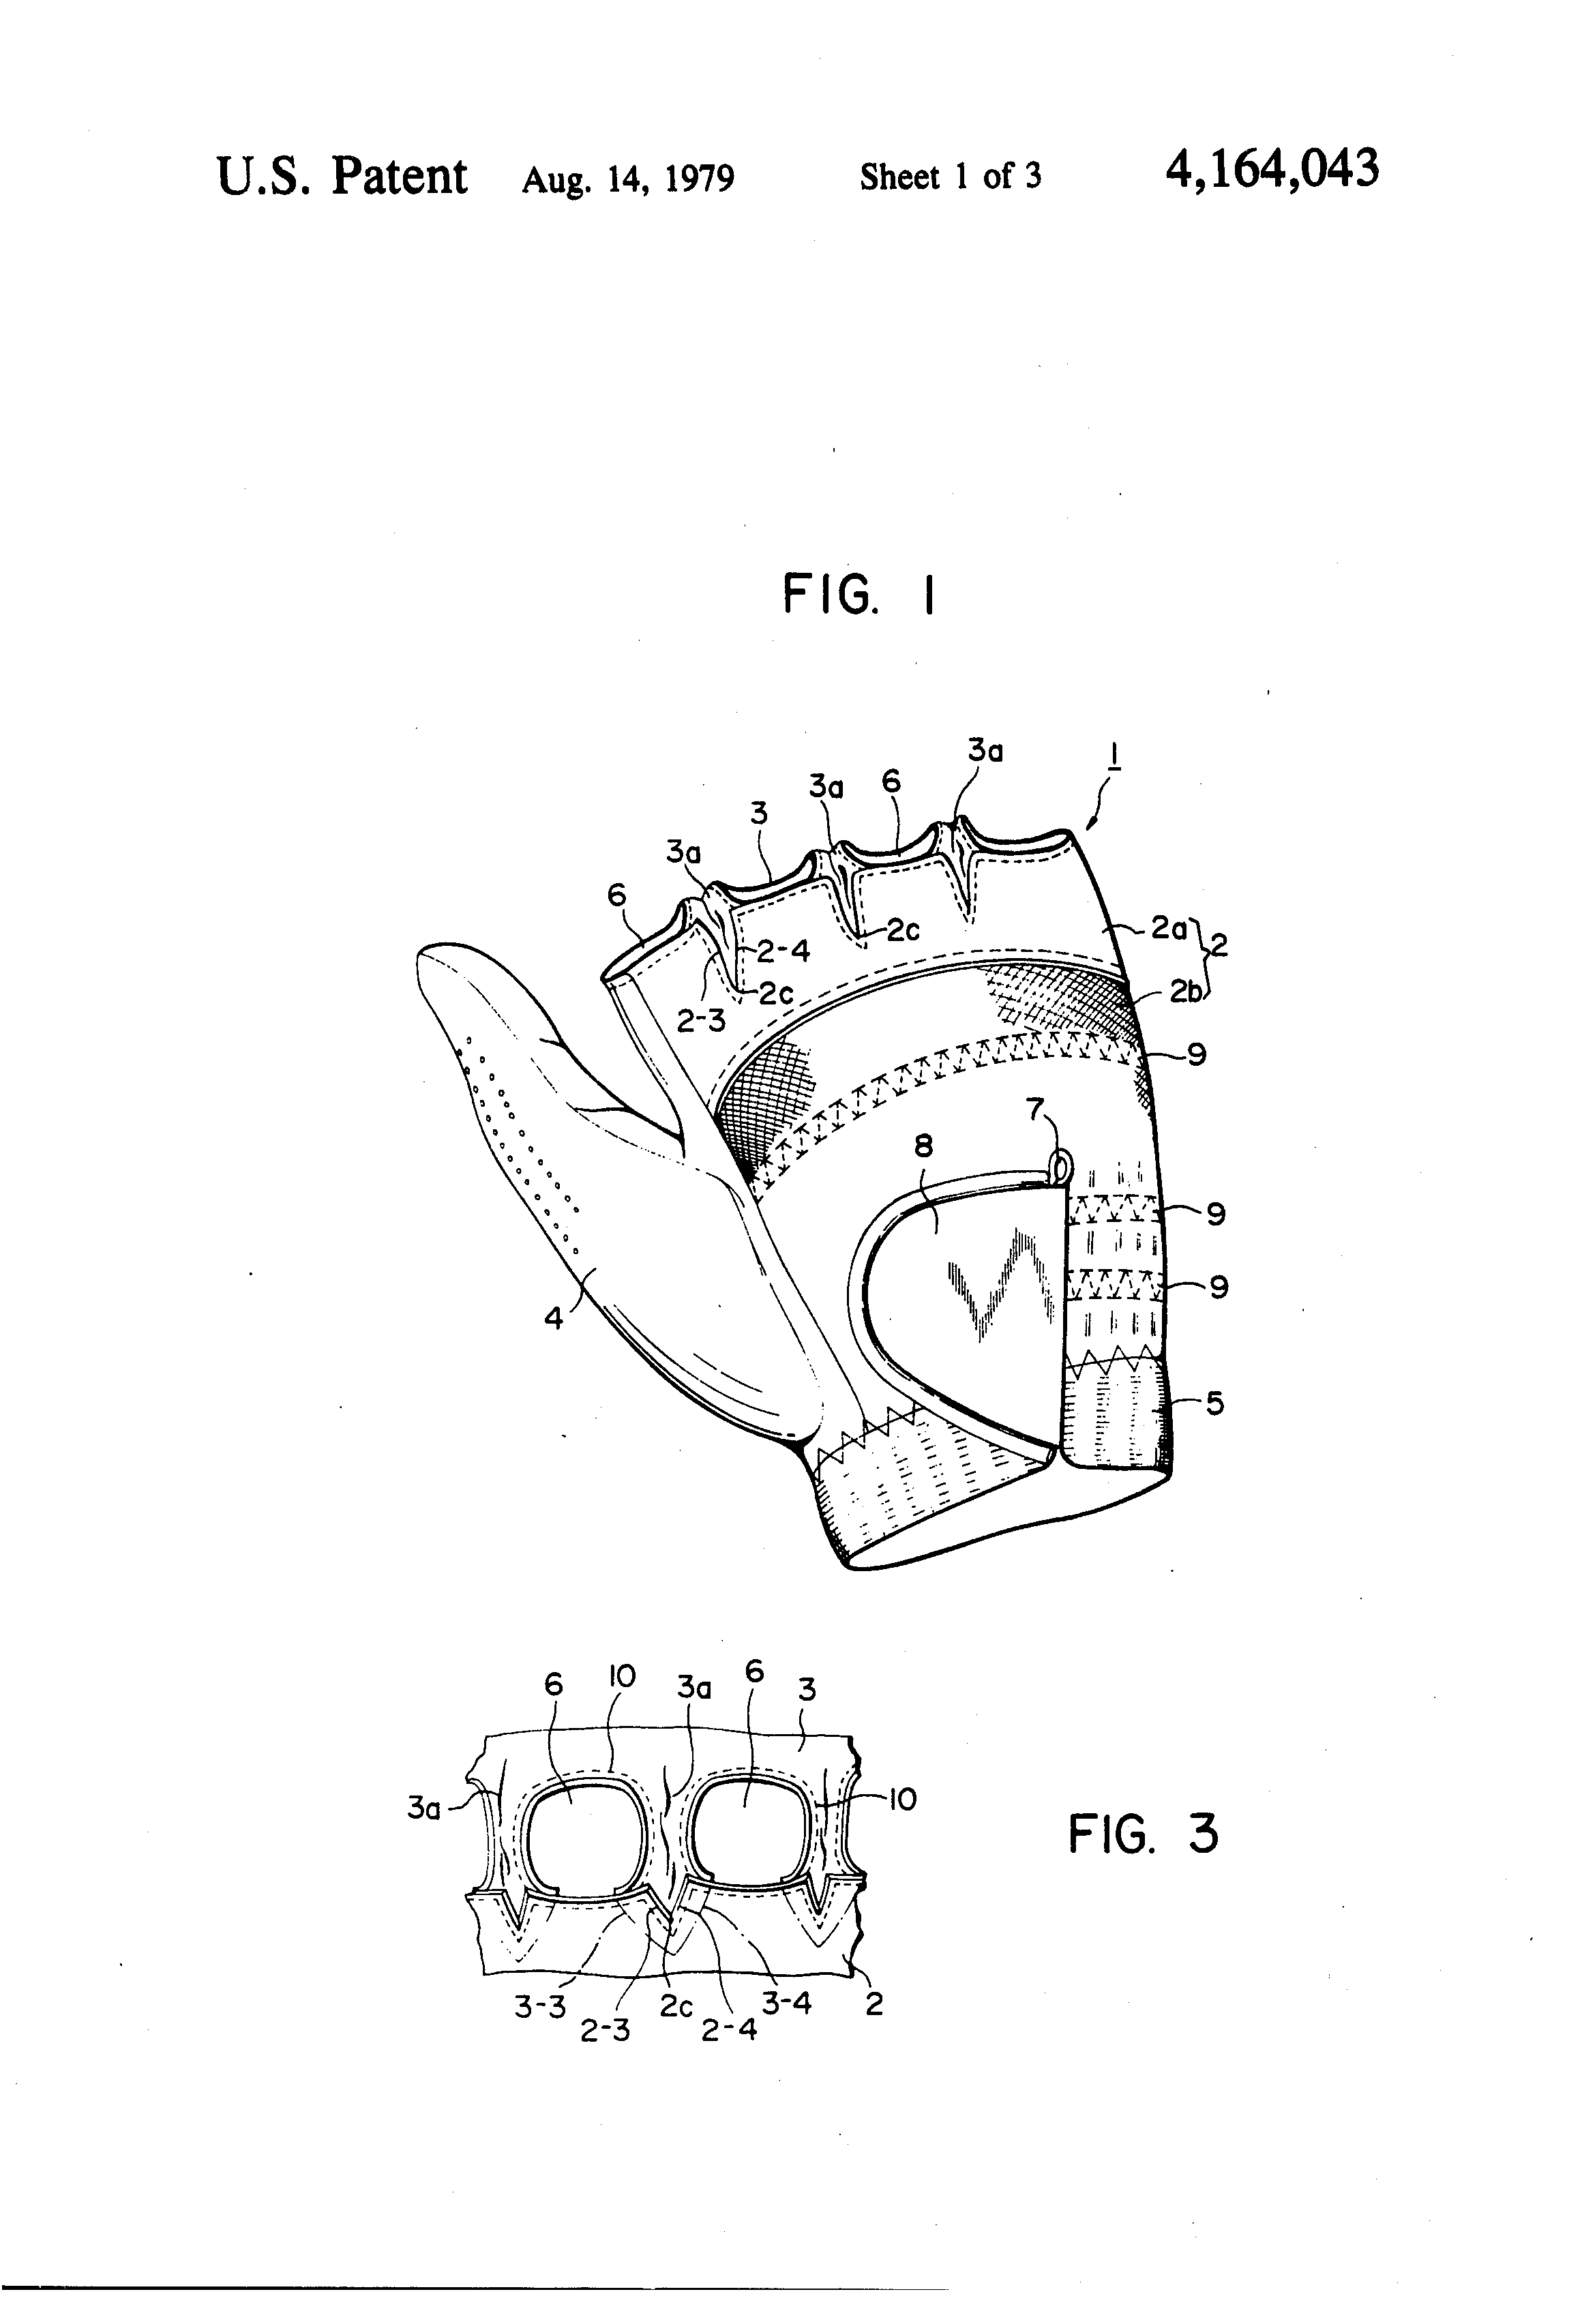 Fingerless gloves for drawing - Patent Drawing